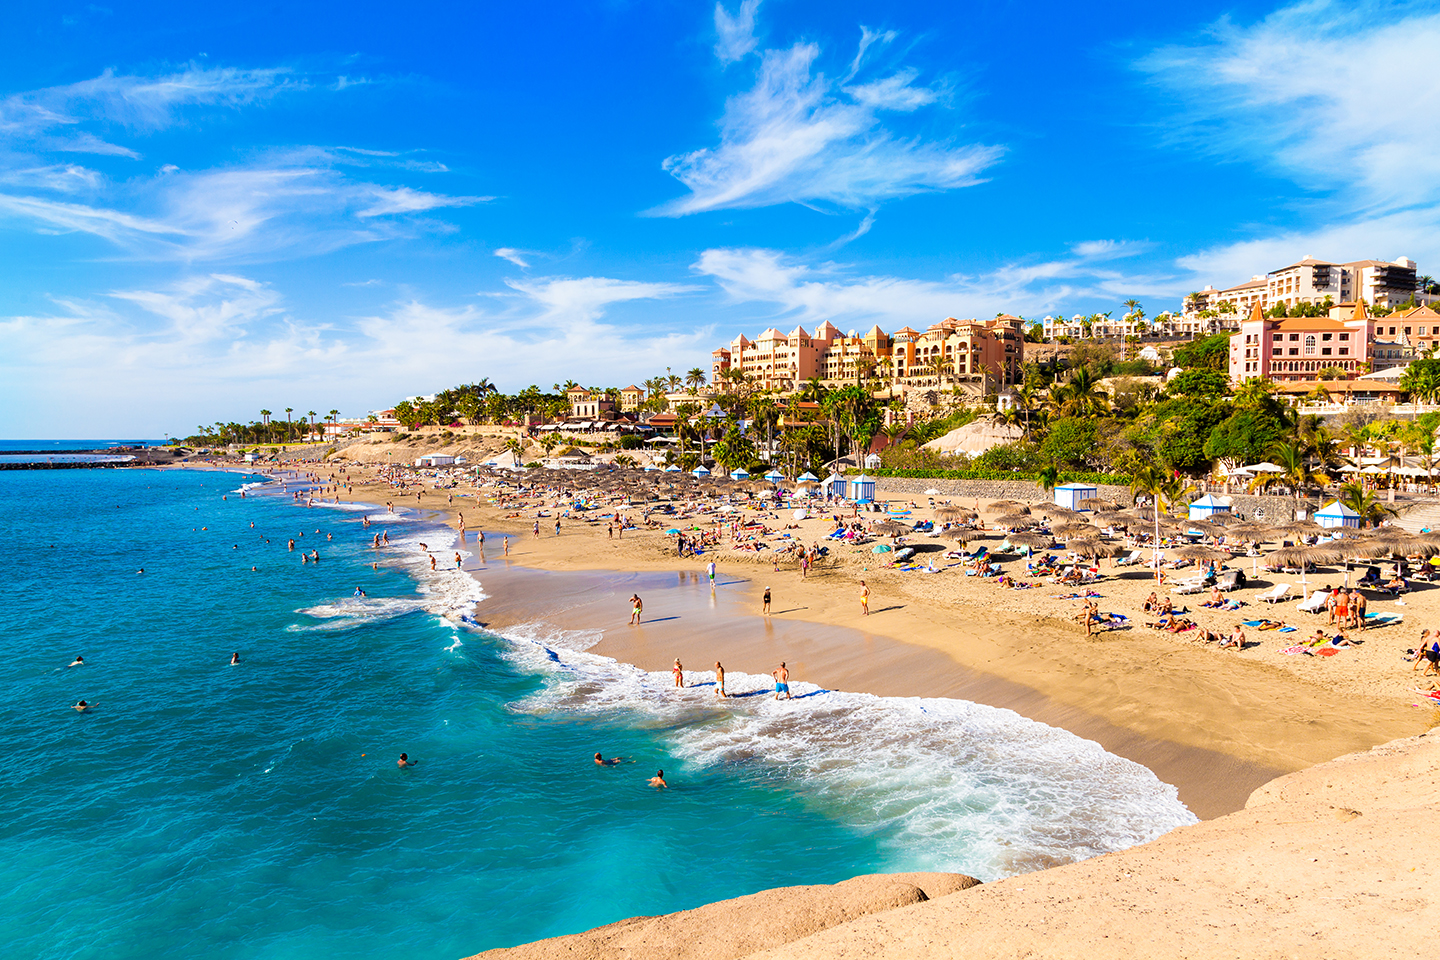 a beach in Costa Adeje, Tenerife, one of the best places for fishing holidays Europe has to offer.